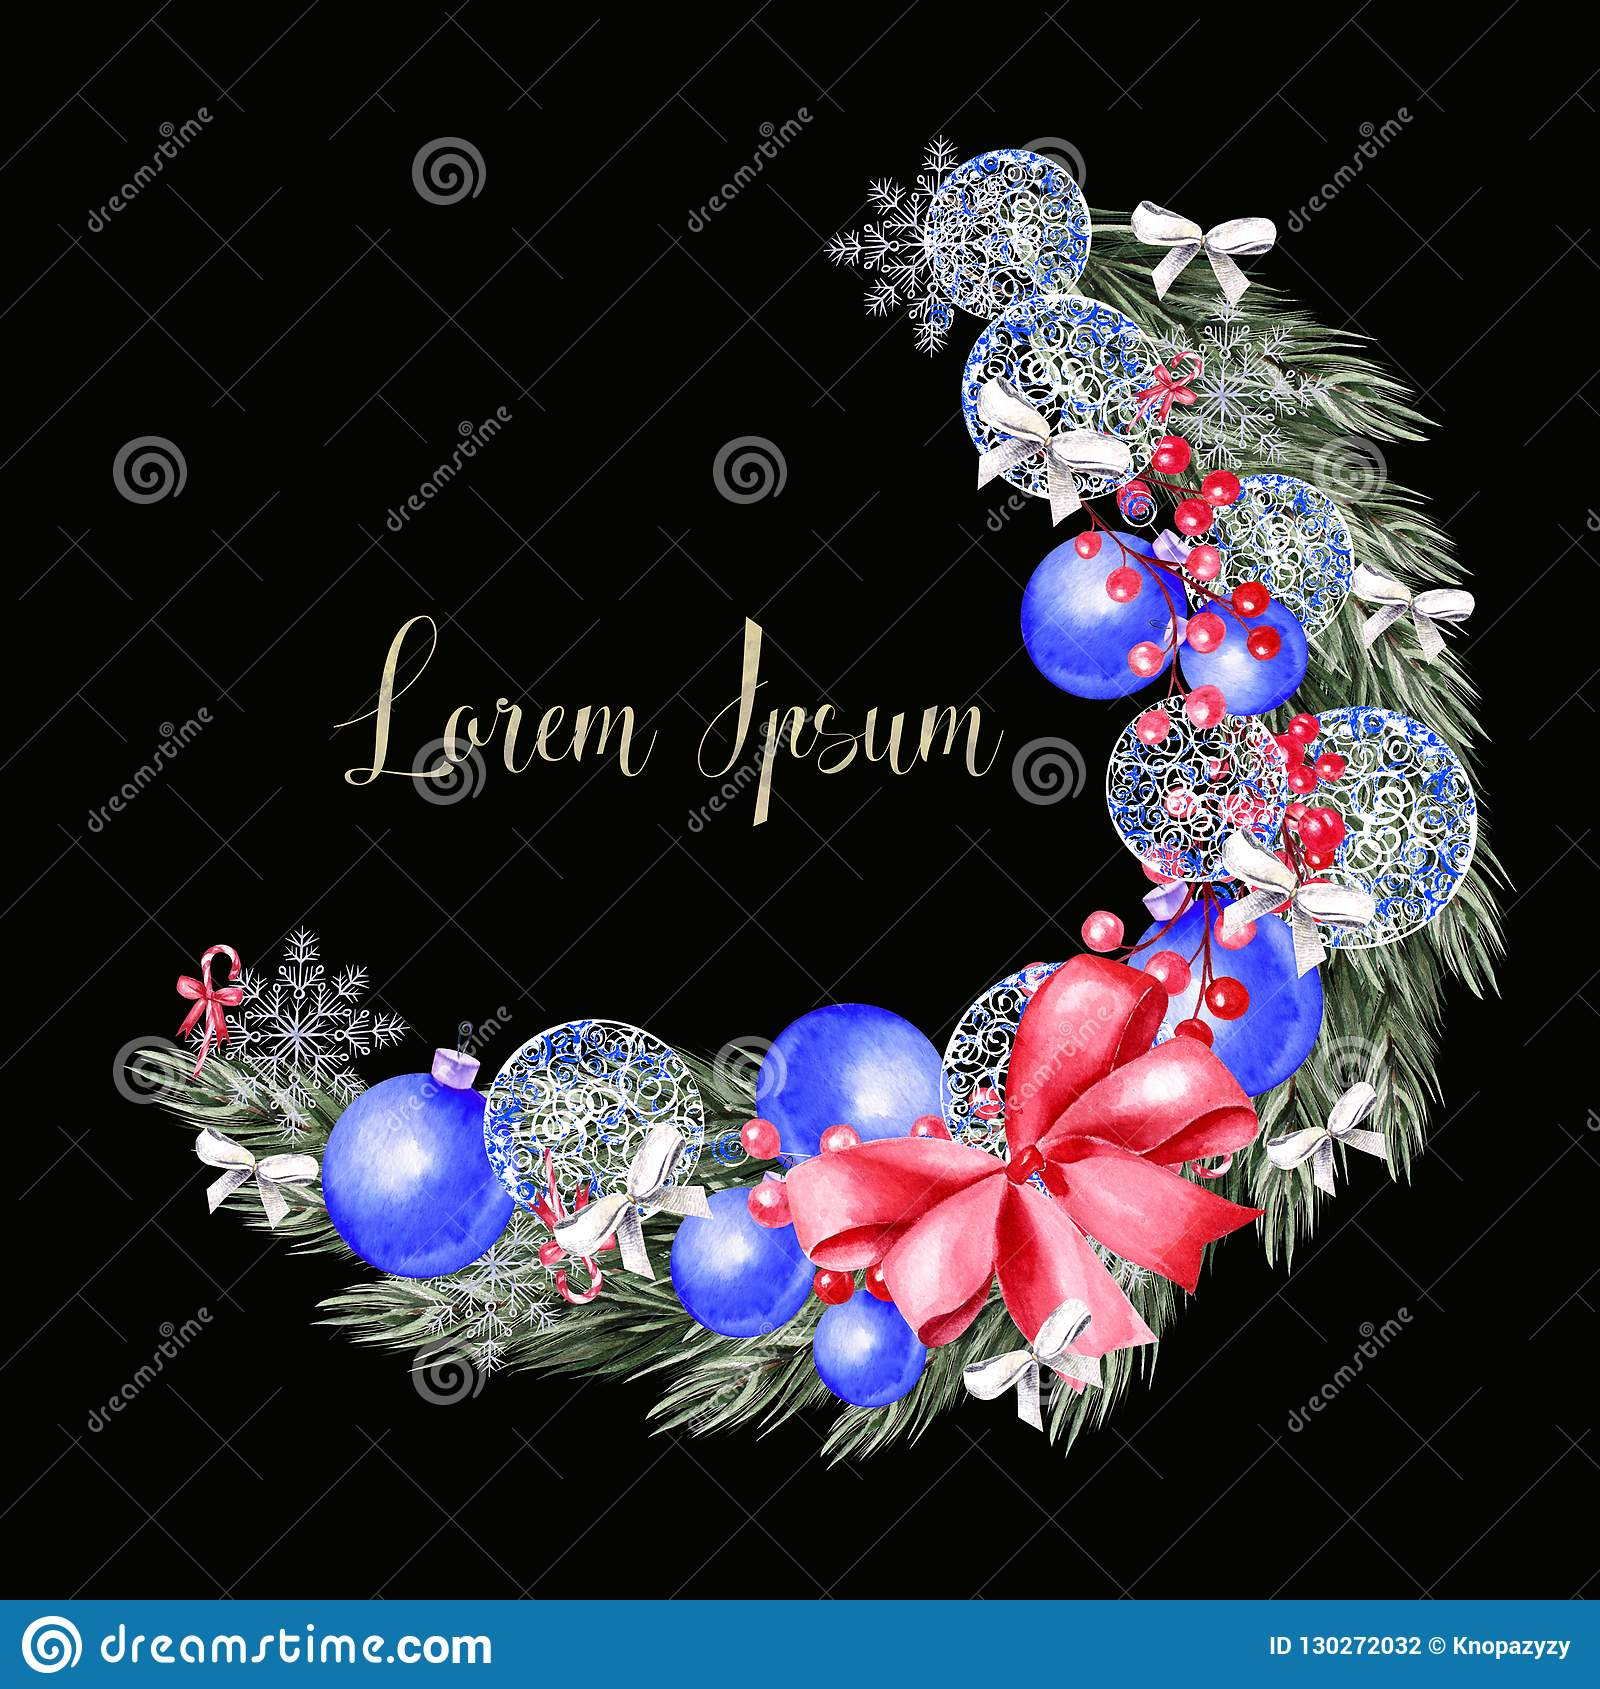 Watercolor Christmas wreath with toys, bow, berries and pine.